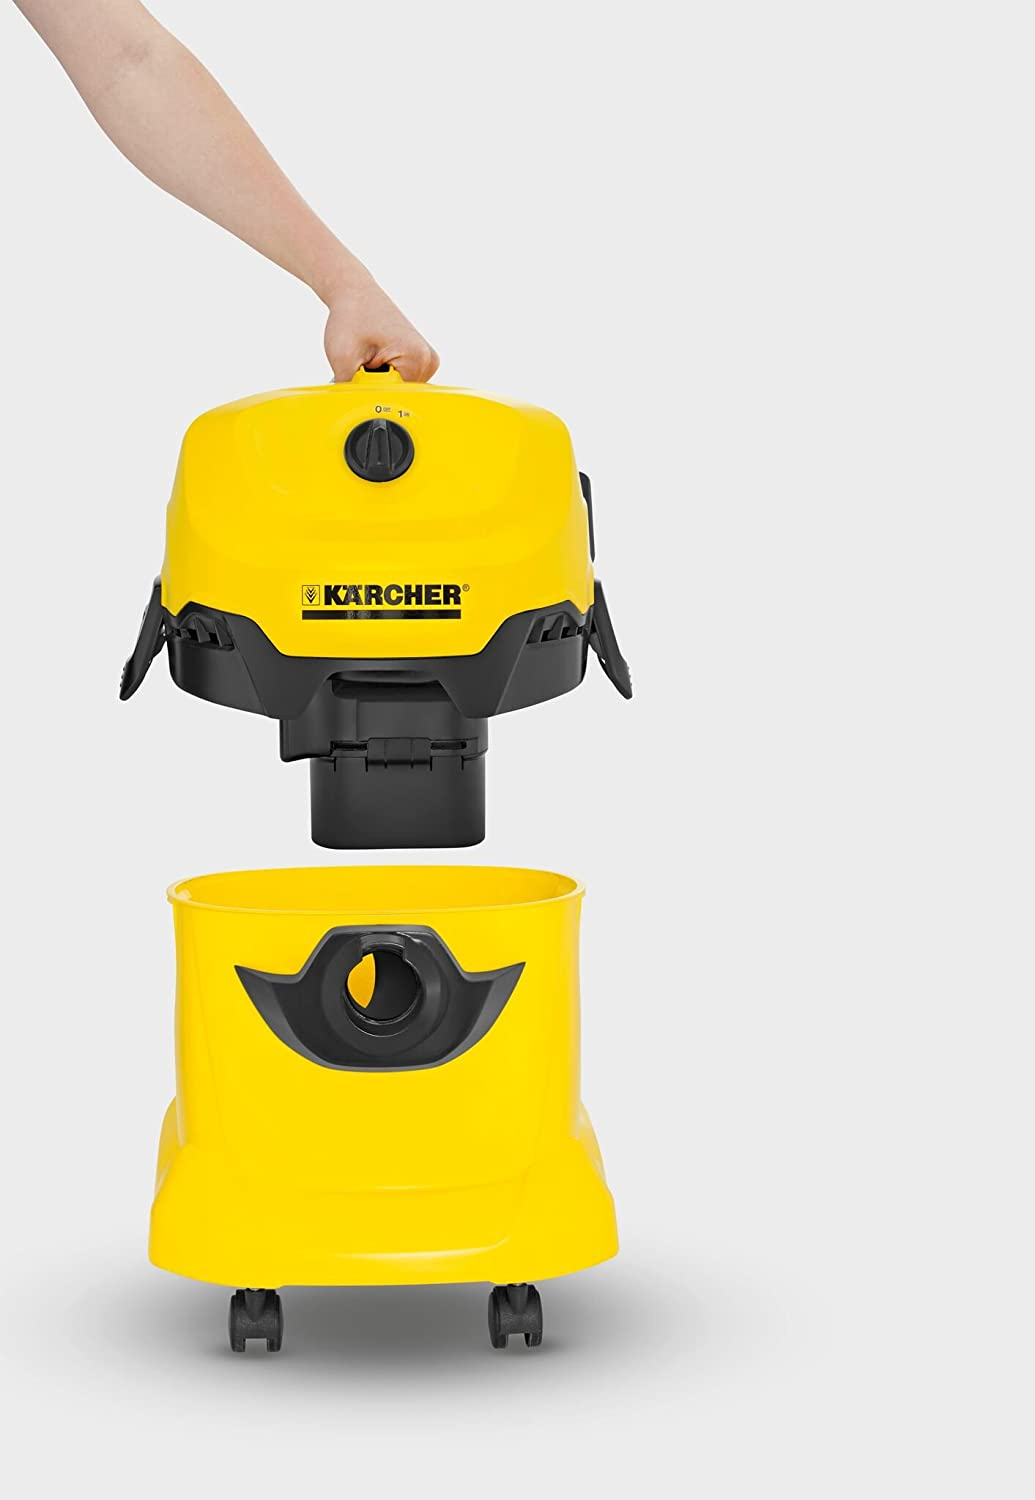 Amazon.com: Karcher WD 4 Wet and Dry Vacuum Cleaner: Kitchen ...